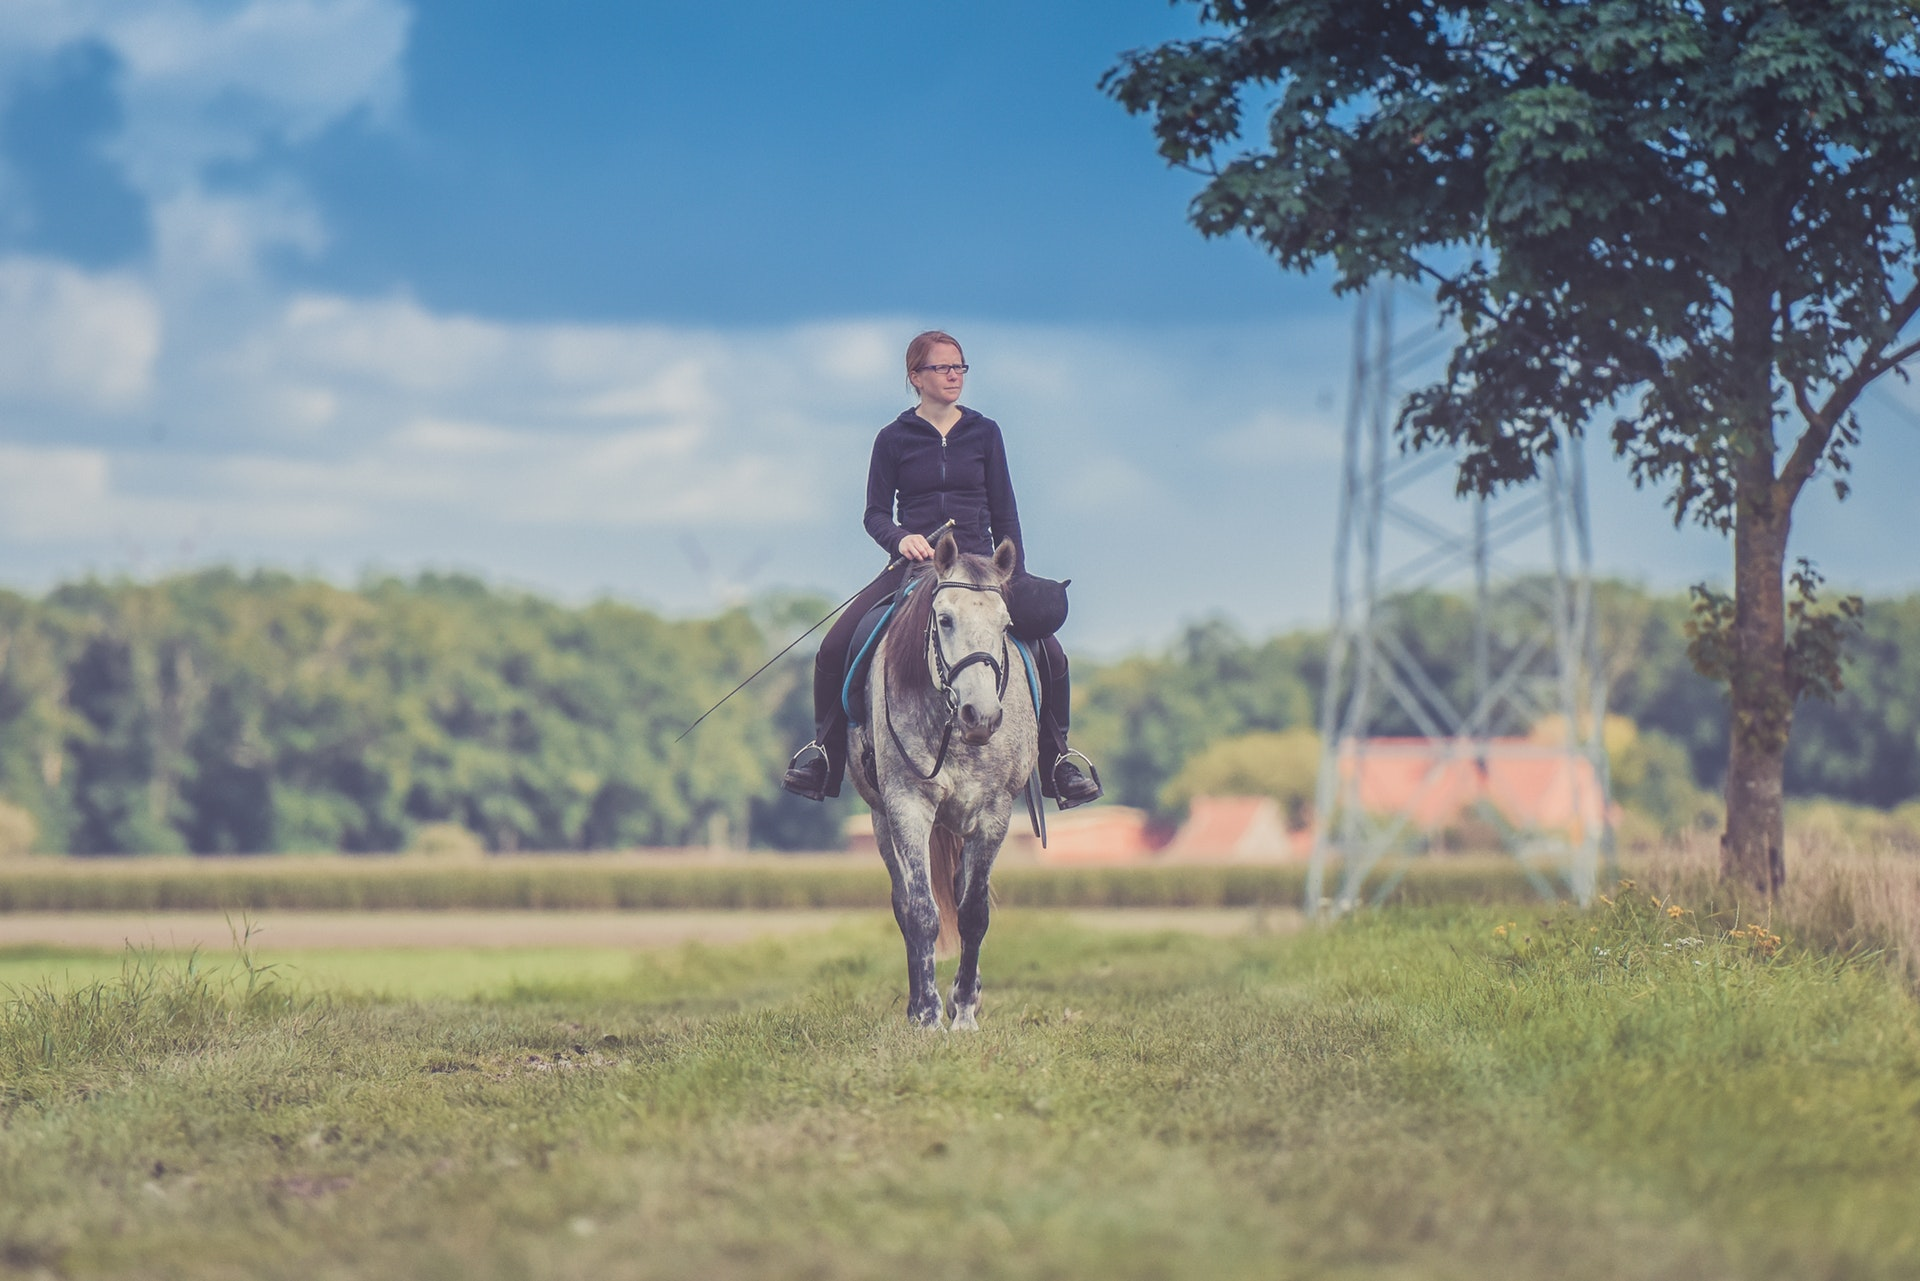 A Beginner's Guide to Horseback Riding